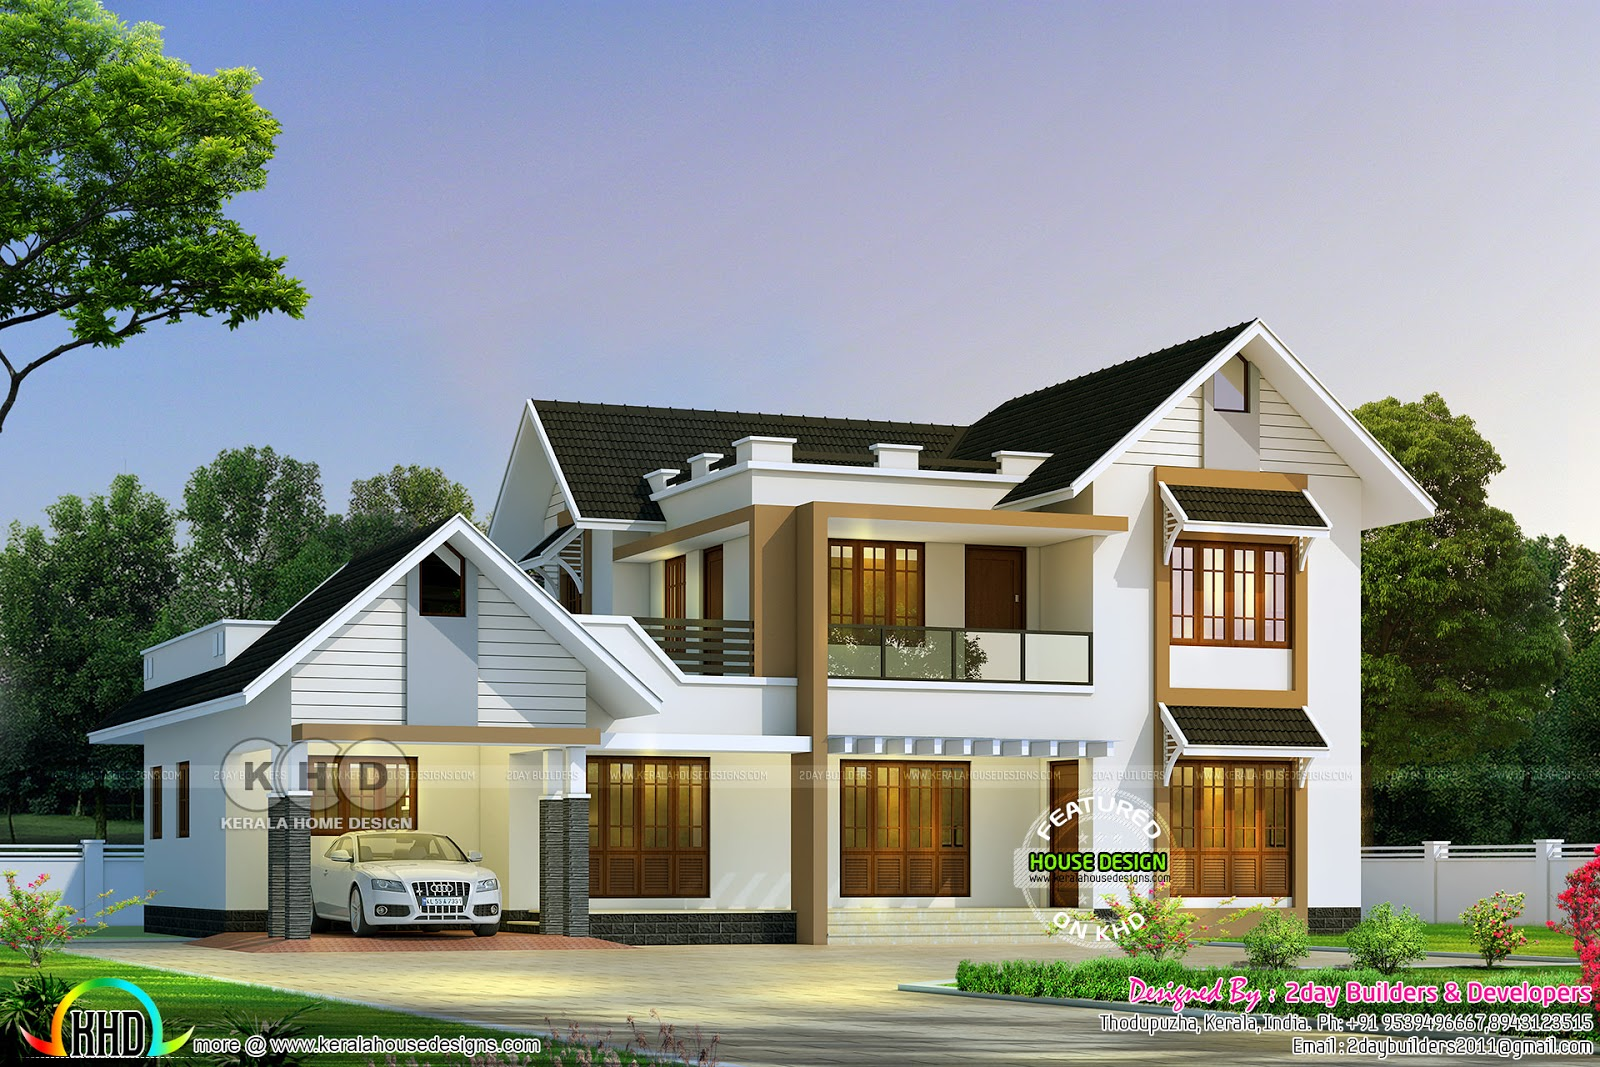 2017 kerala home design and floor plans for Www homedesign com